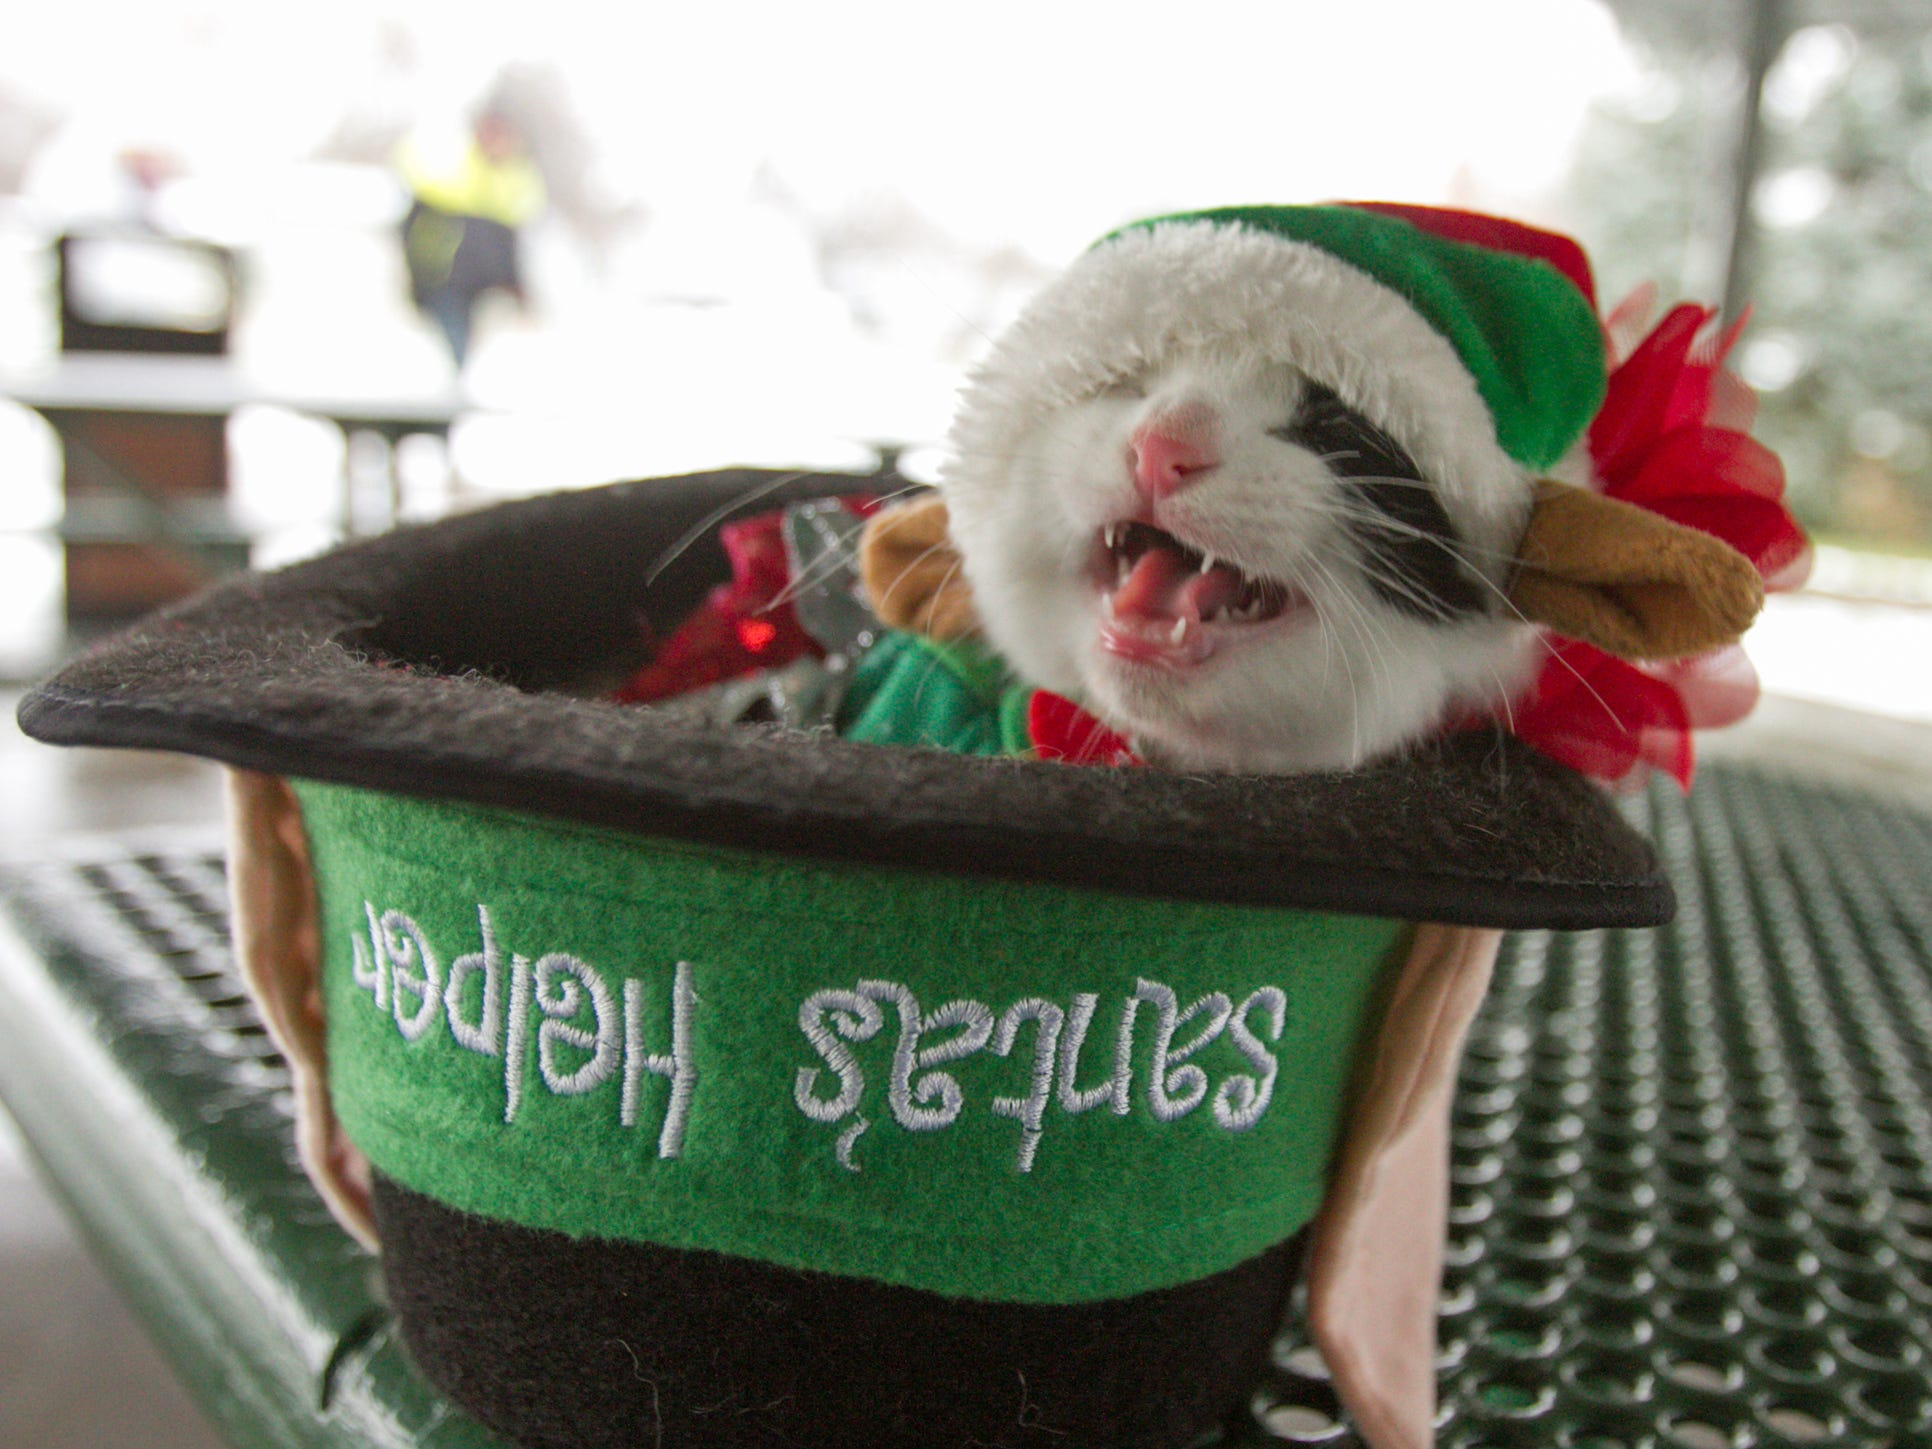 Reeses, an 11-week-old kitten, doesn't appear to be in the spirit of Christmas for the pet parade in the Christmas in the 'Ville festivities Saturday, Dec. 1, 2018.